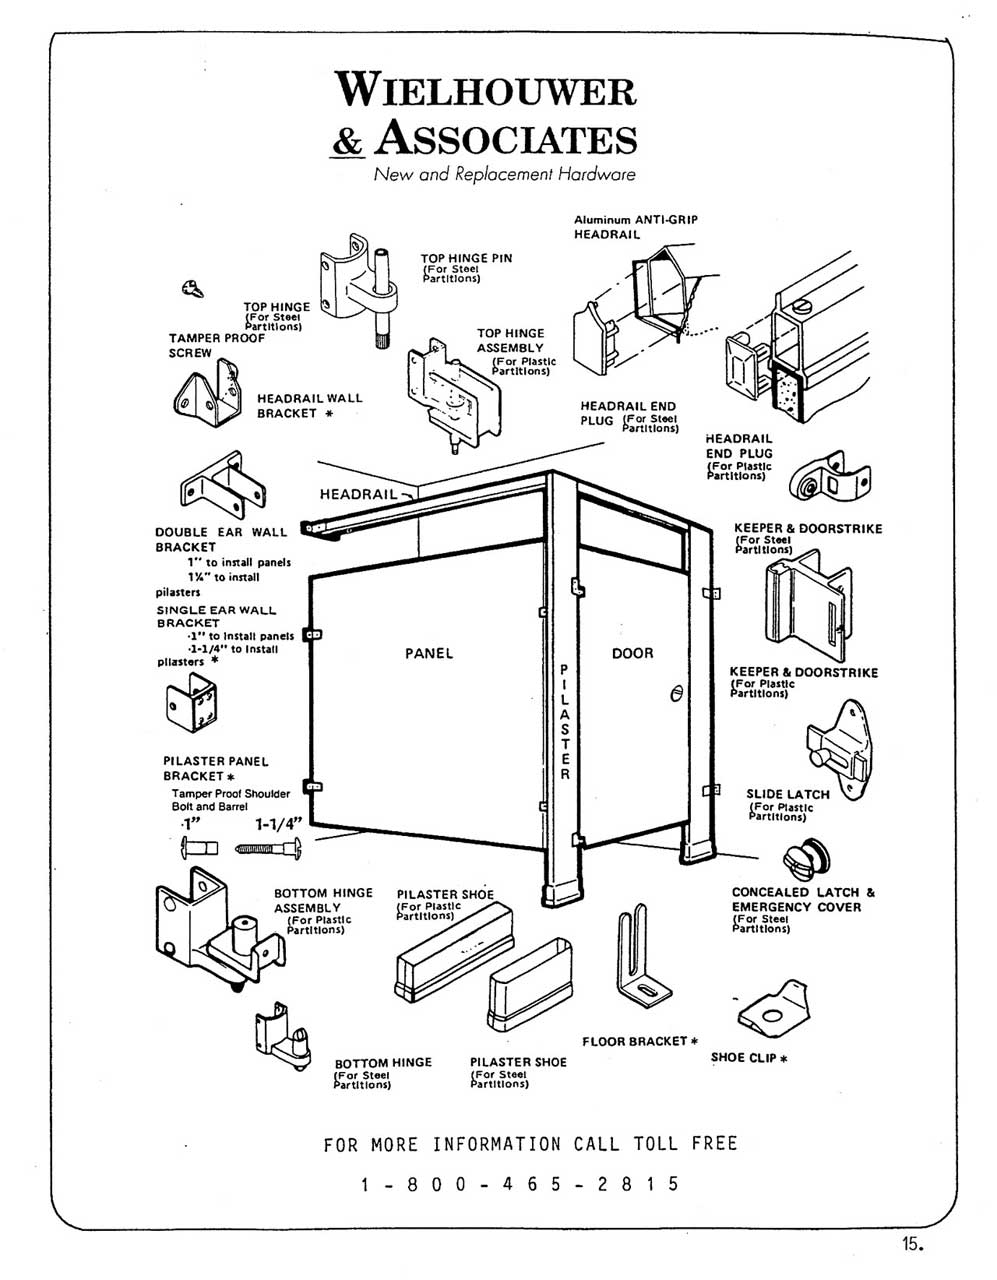 bathroom stall parts. Toilet Partition Diagram Showing Common Components And Replacement Parts. Bathroom Stall Parts Wielhouwer Hardware Specialists